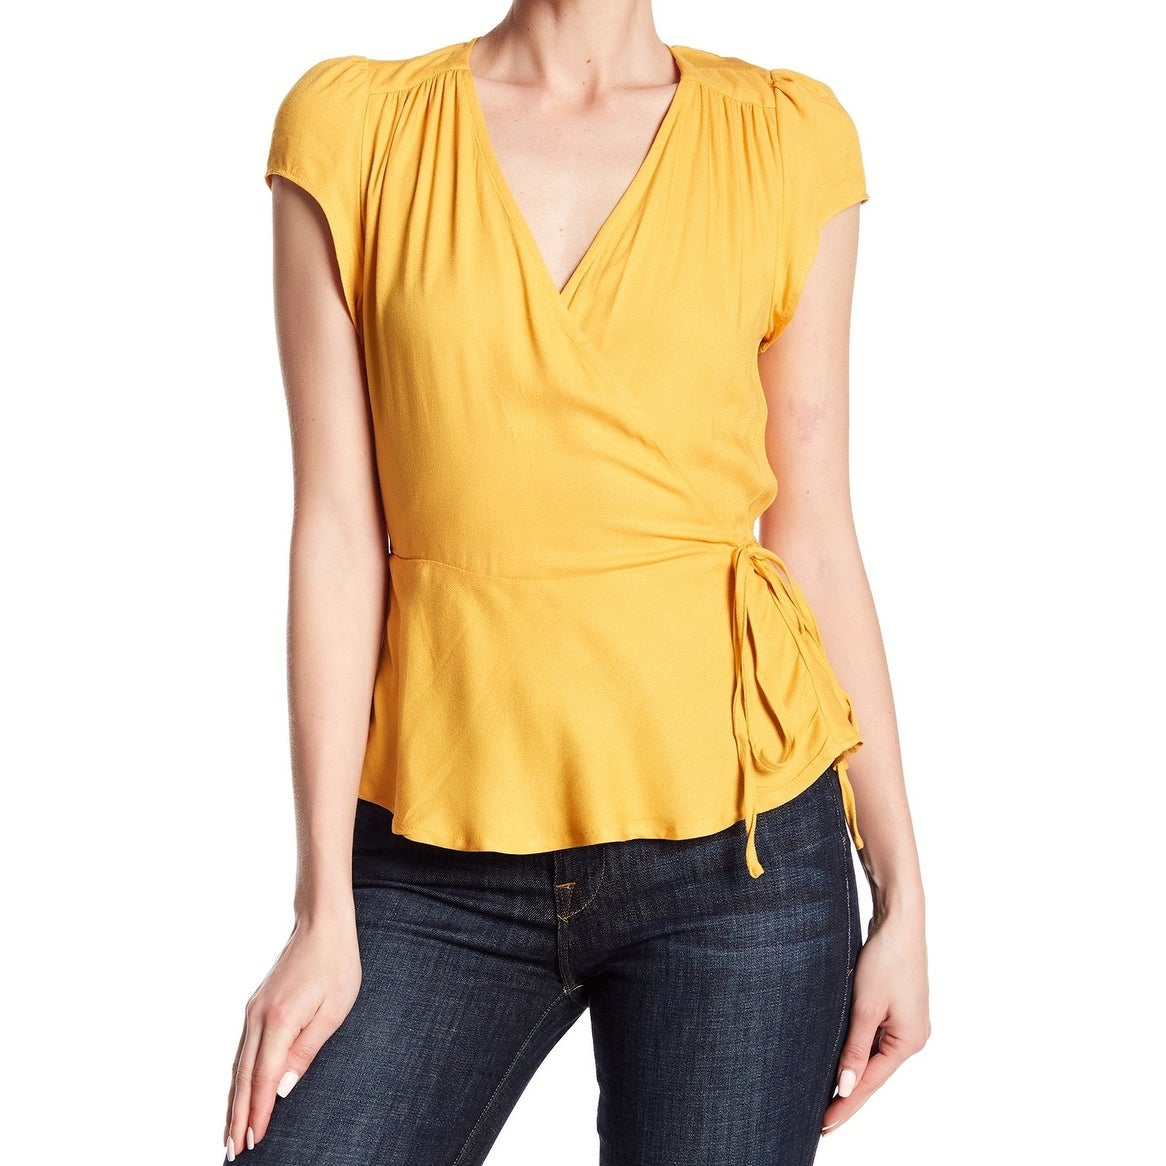 71e5e39c59 Love Fire Womens Blouse Yellow Size XL Surplice V-Neck Tie-Waist Ruffle-Hem  427